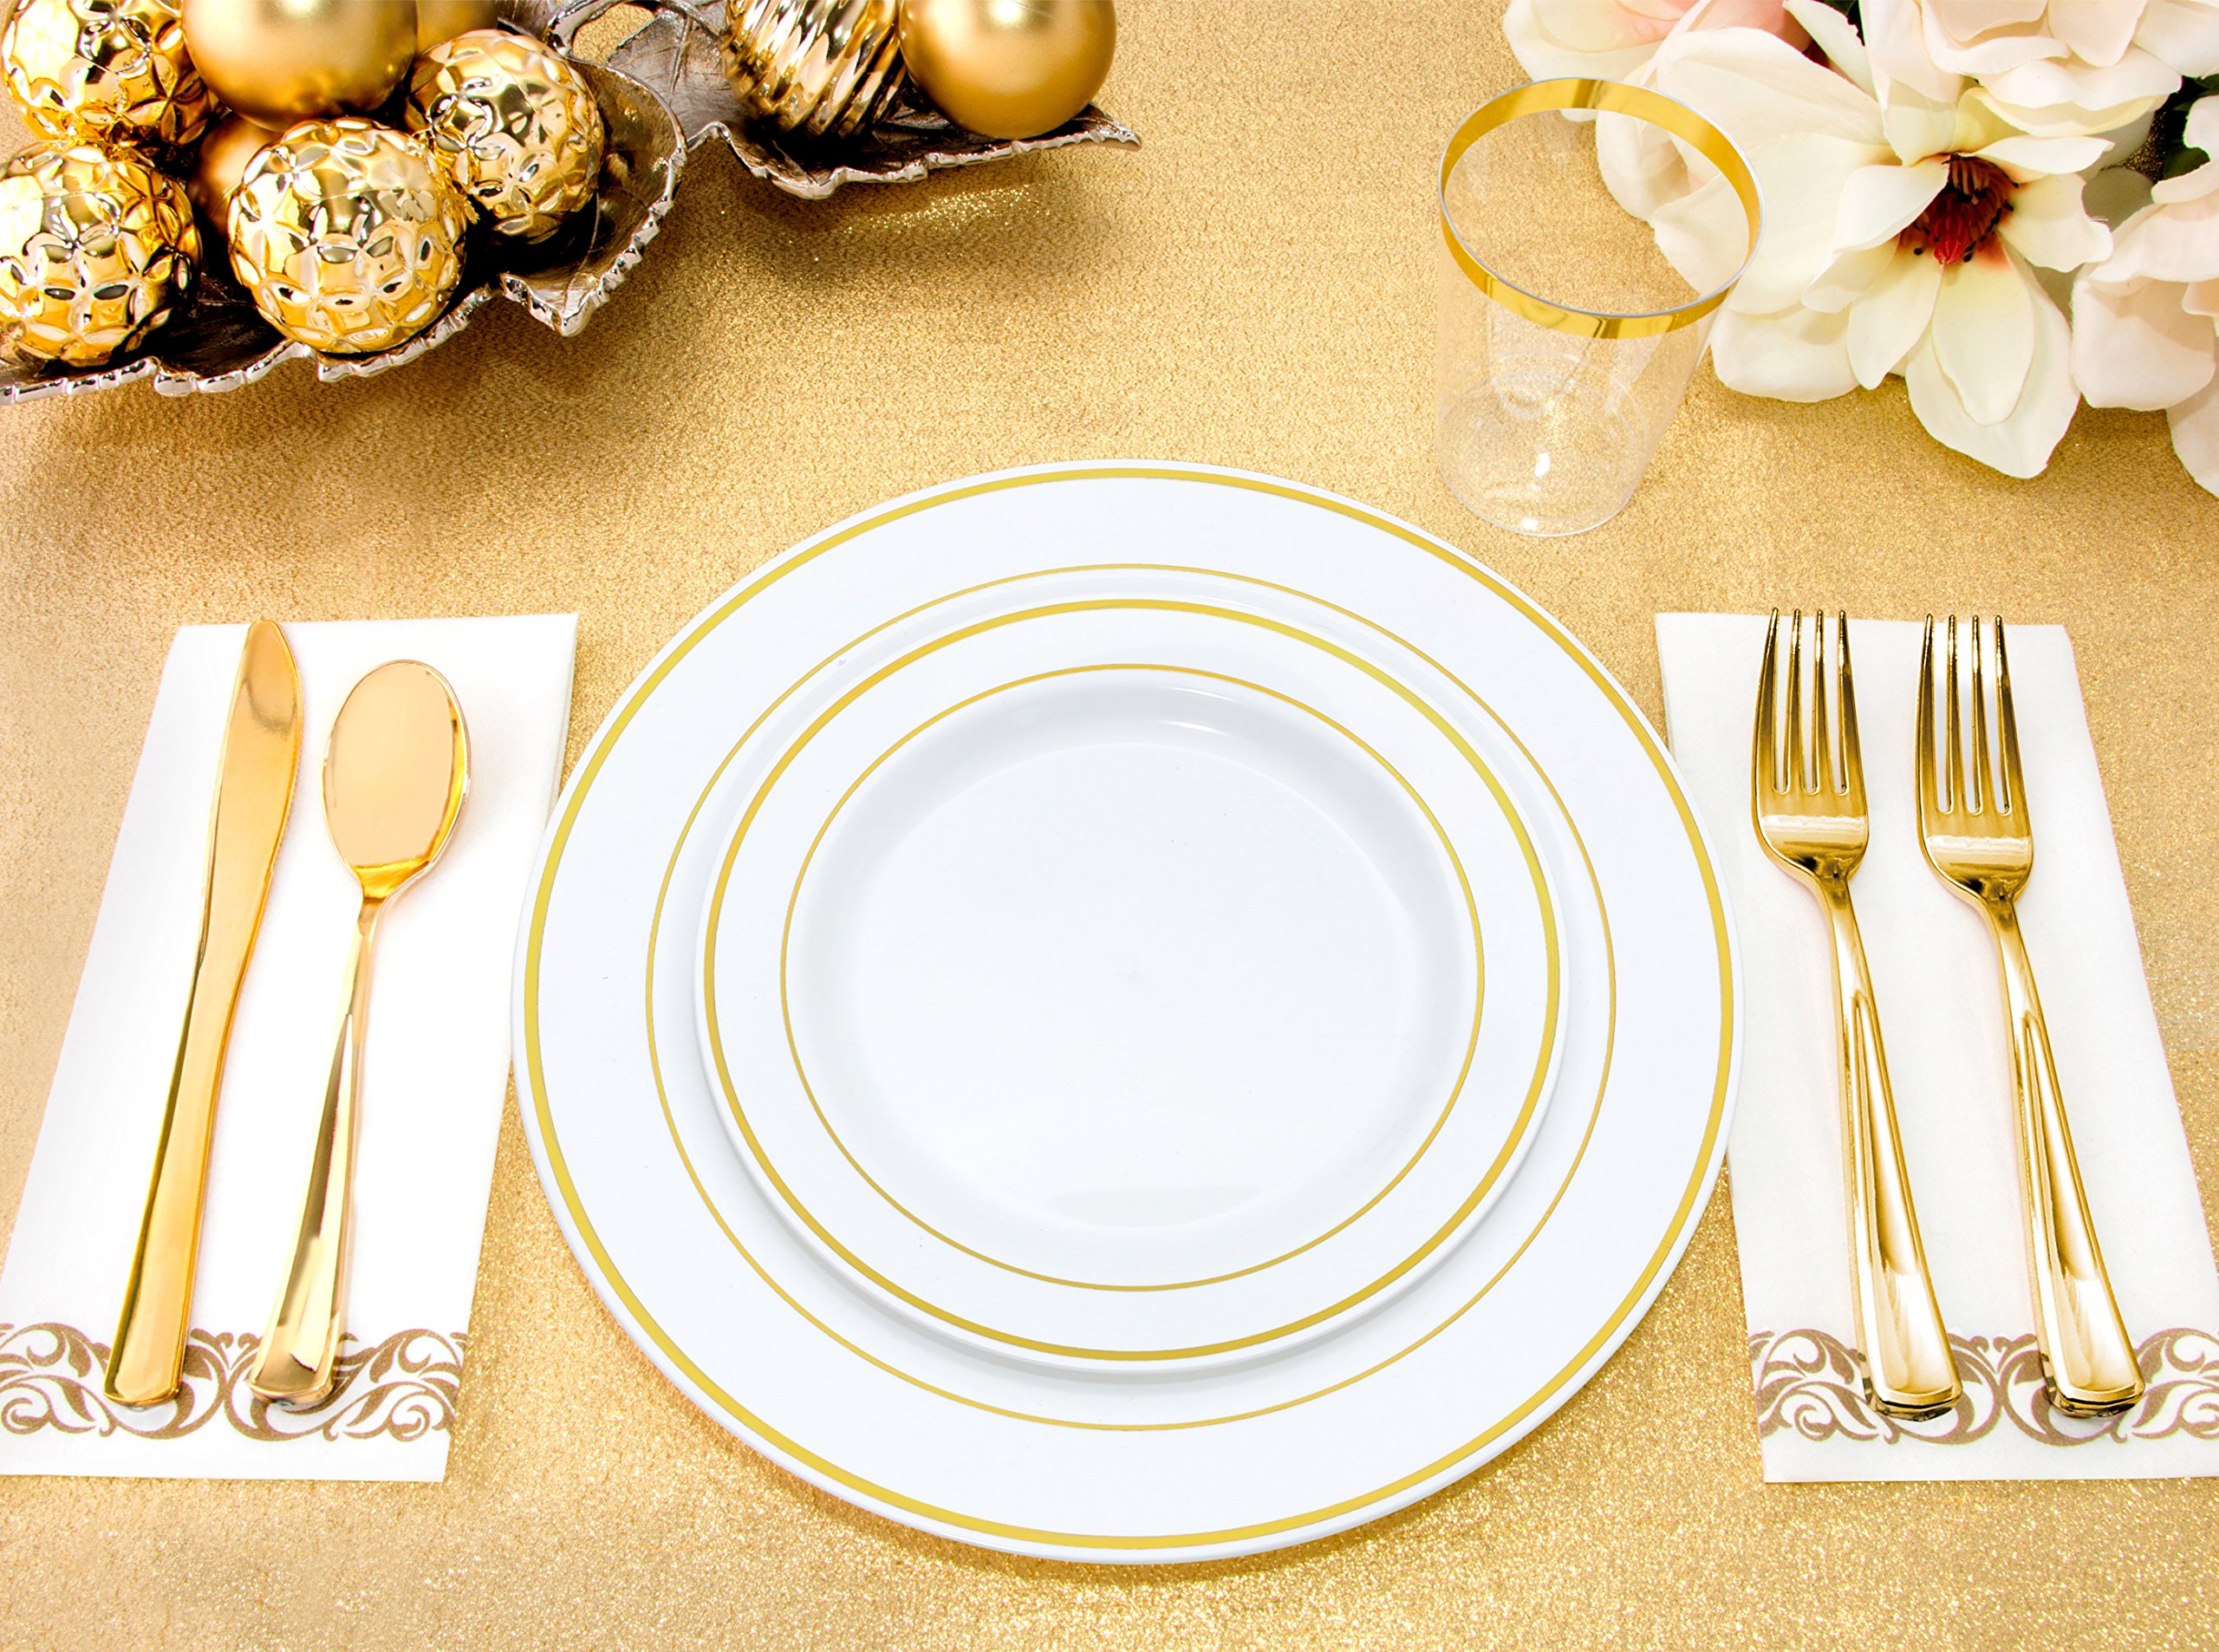 25 Guest Disposable Gold Dinnerware Set | Heavy Duty Plastic Plates, Cups, Silverware & Napkins. 50 Forks, 25 Spoons, 25 Dessert Spoons, 25 Knives, 25 Dinner Plates, 25 Dessert Plates, 25 Soup Bowls by BloominGoods (Image #2)